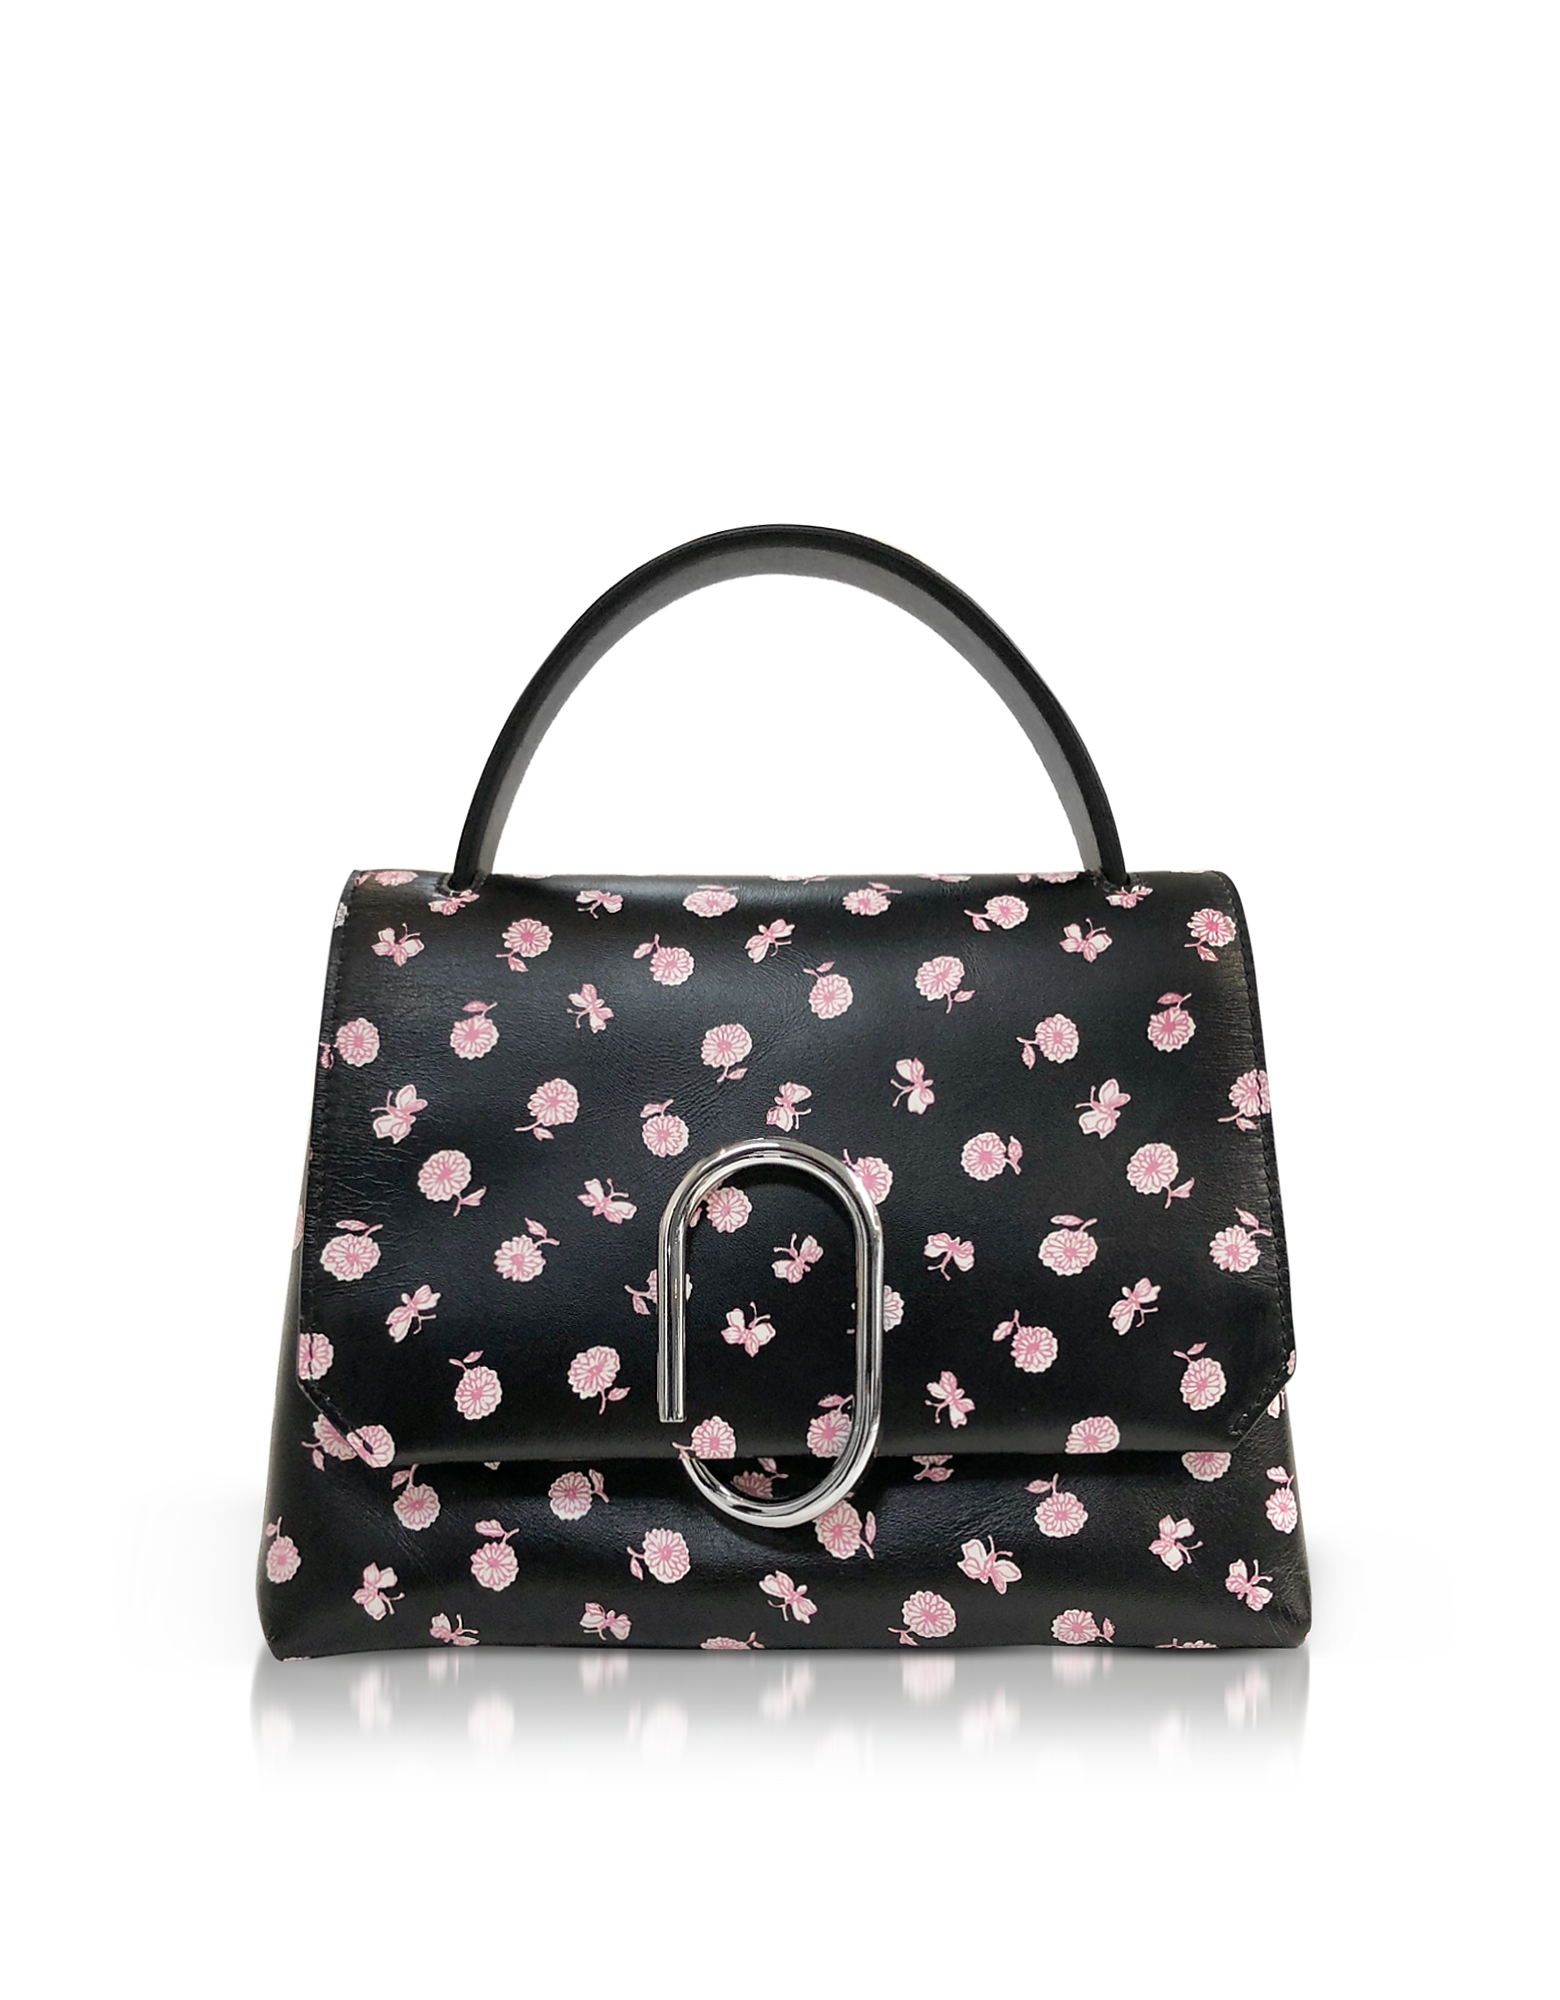 Image of 3.1 Phillip Lim Designer Handbags, Alix Black Printed Leather Mini Top Handle Satchel Bag